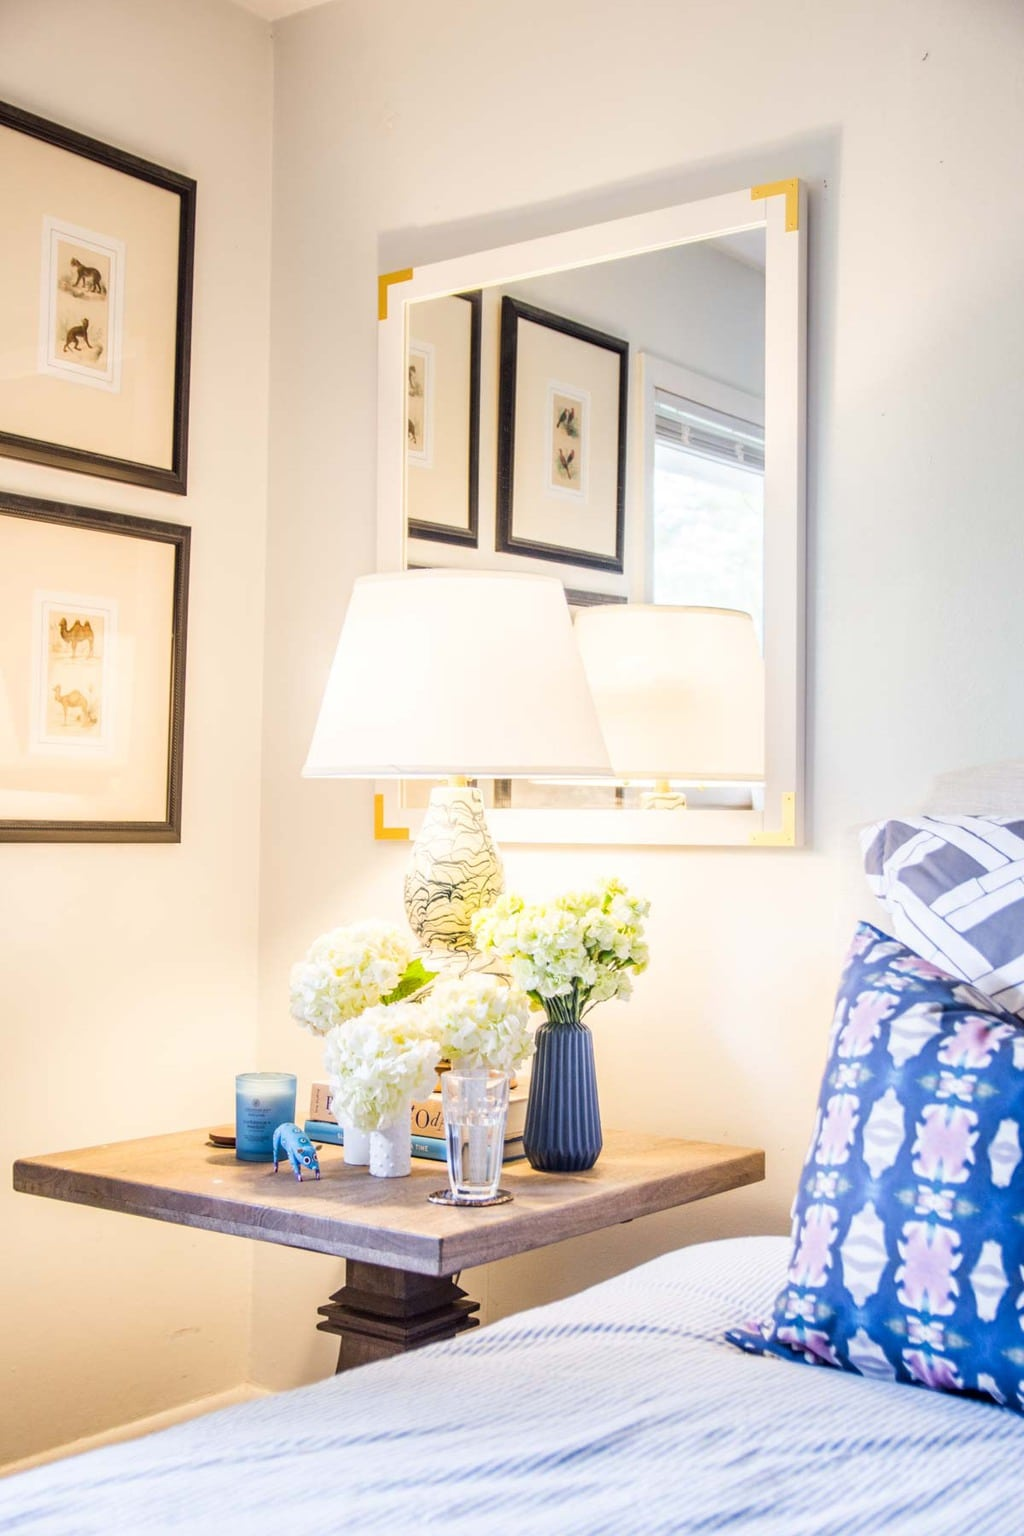 Soraa healthy light bulb with no blue light in a serene bedroom on Thou Swell @thouswellblog